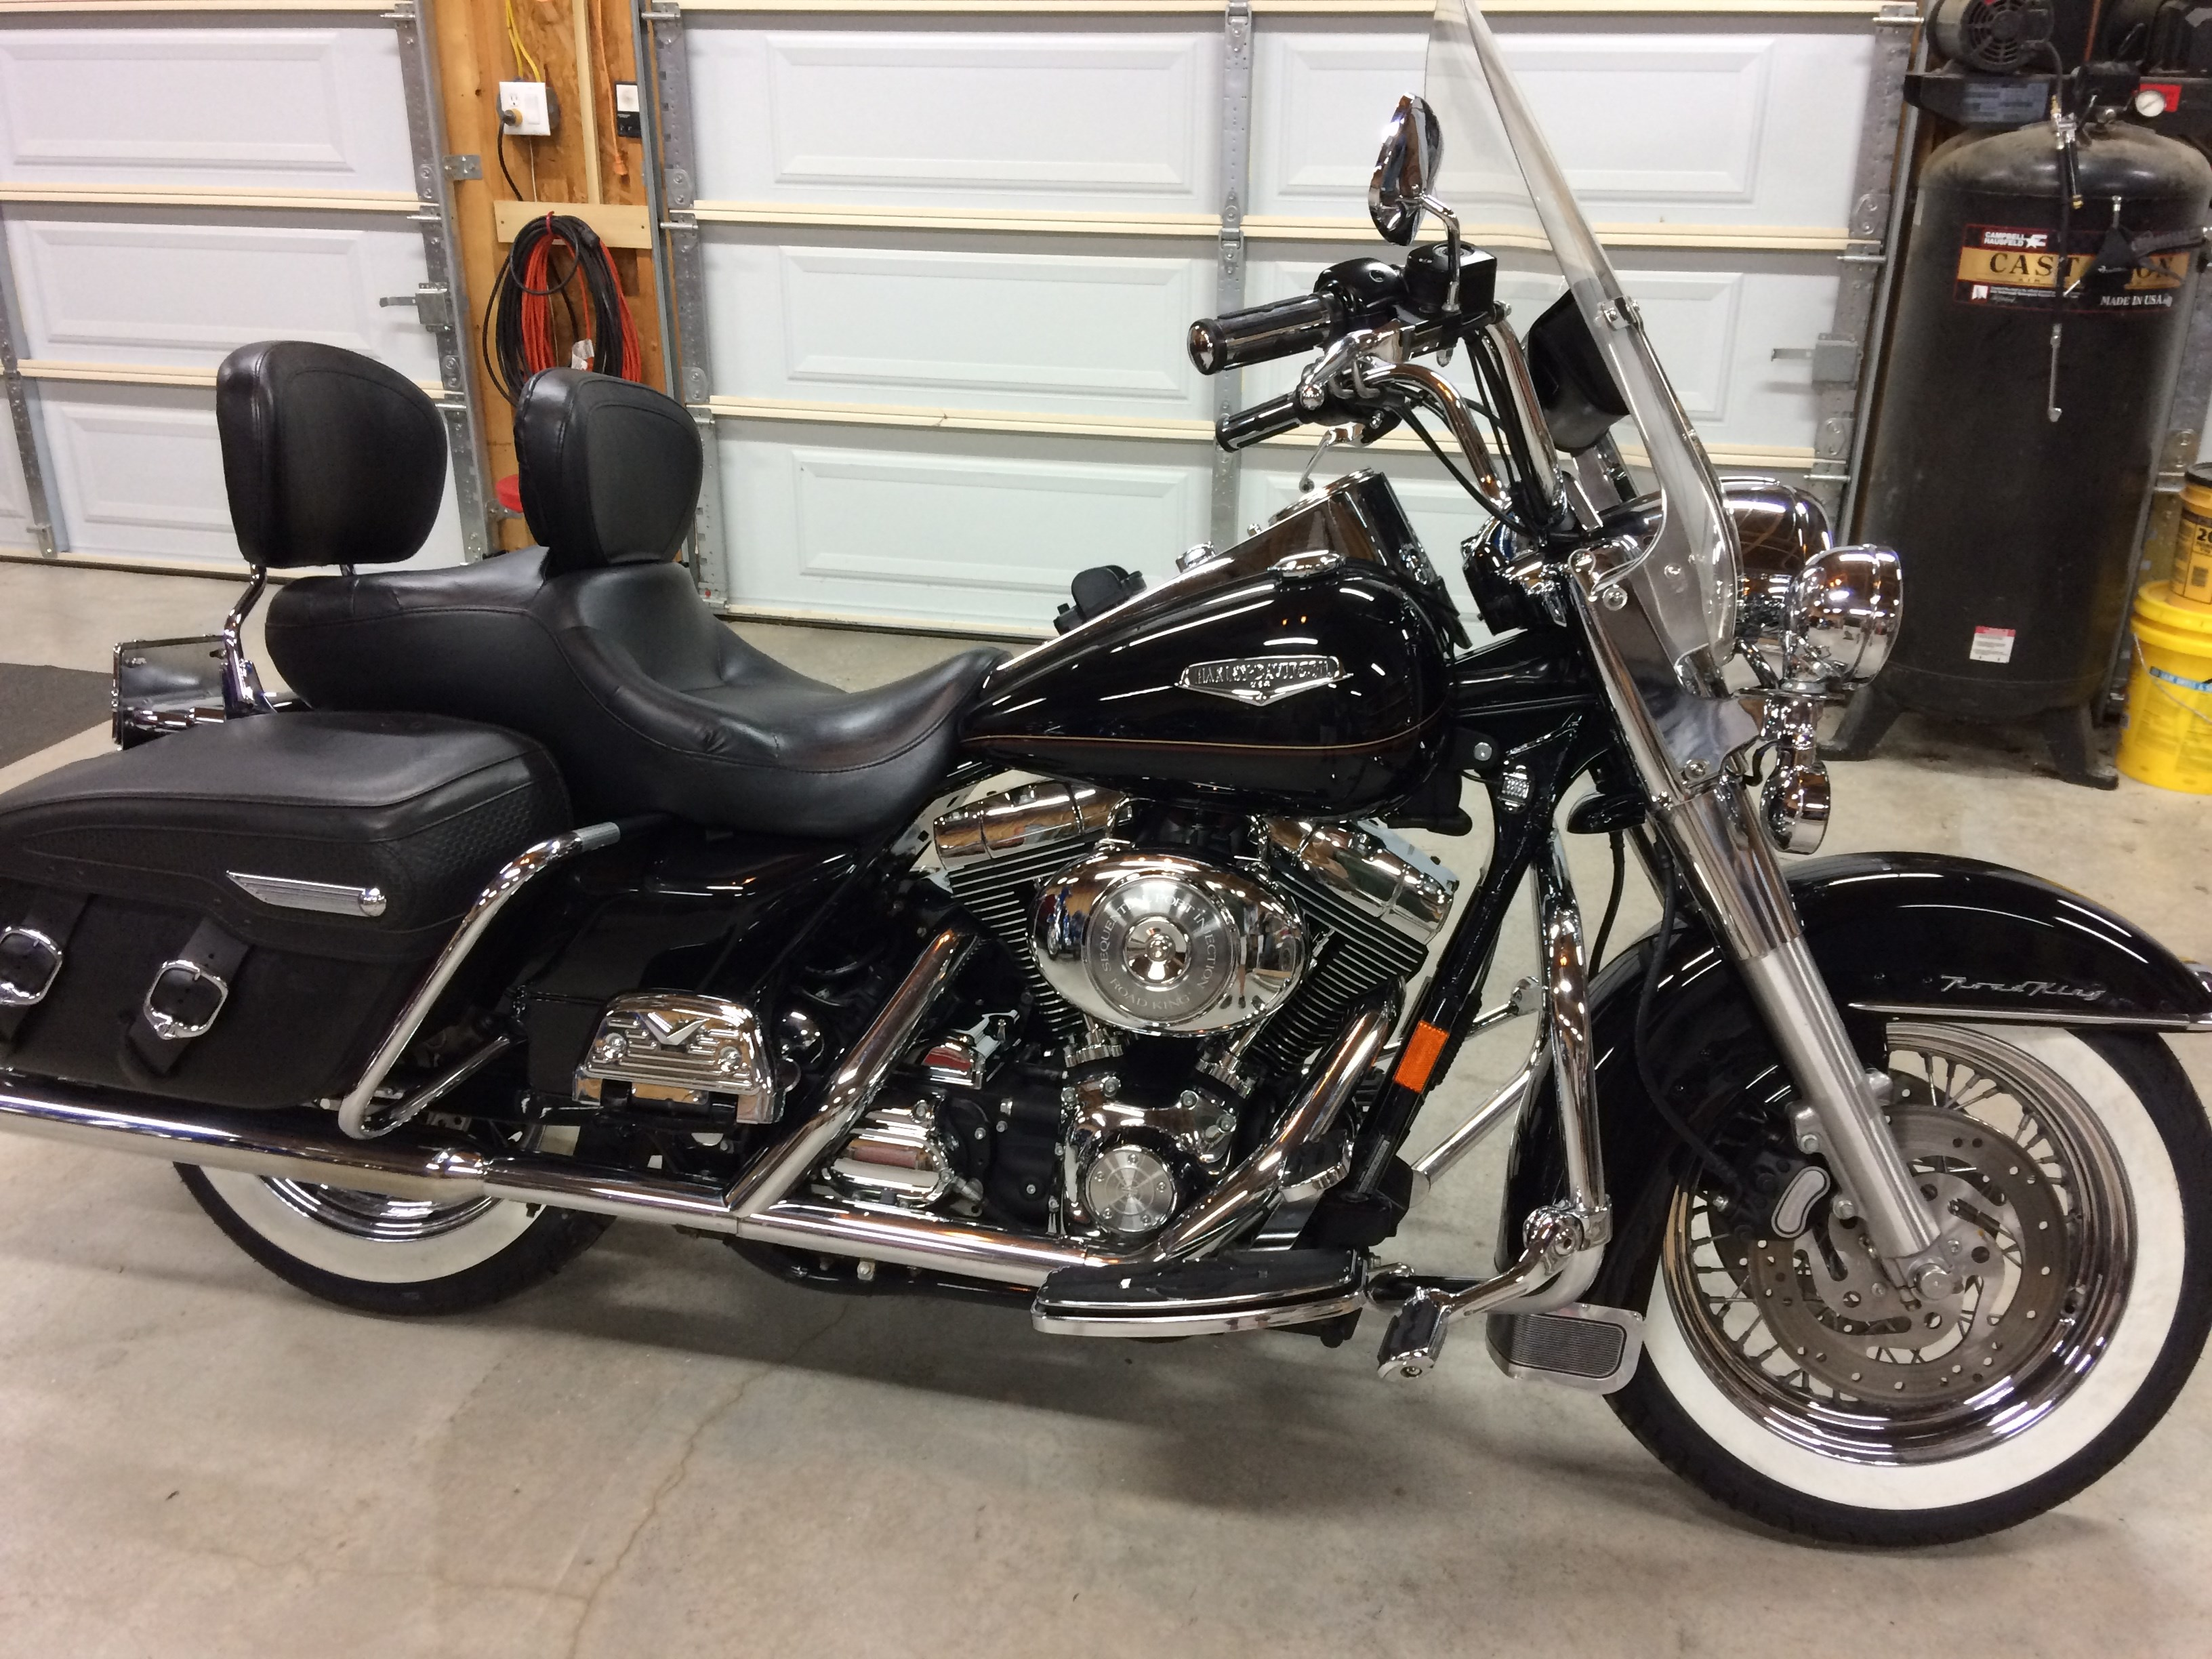 2017 Road Glide Ultra For Sale Oklahoma >> All New & Used Harley-Davidson® Touring Road King Classic® For Sale (289 Bikes, Page 1 ...